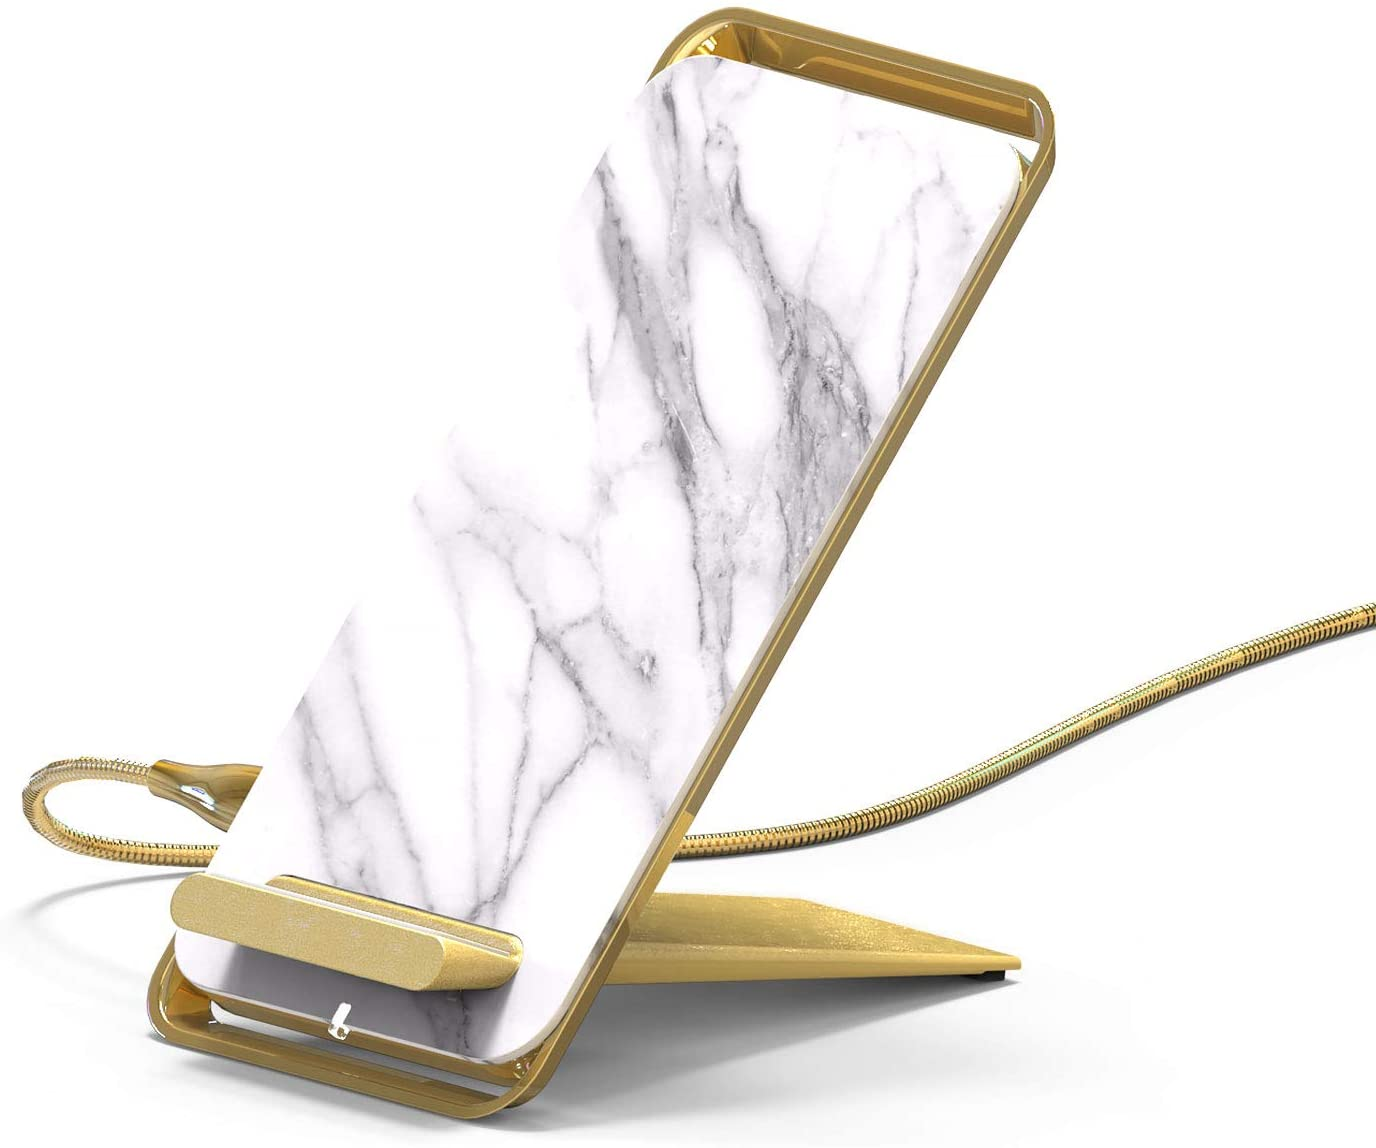 GAZEON 10W Wireless Charging Stand Marble Pattern Surface, 2-Coil Qi Certified Wireless Charger, Compatible iPhone Xs MAX/XS/XR/X/8/8 Plus, Galaxy Note9/8/S9/S9 Plus/S8, USB Type C for Fast Charge